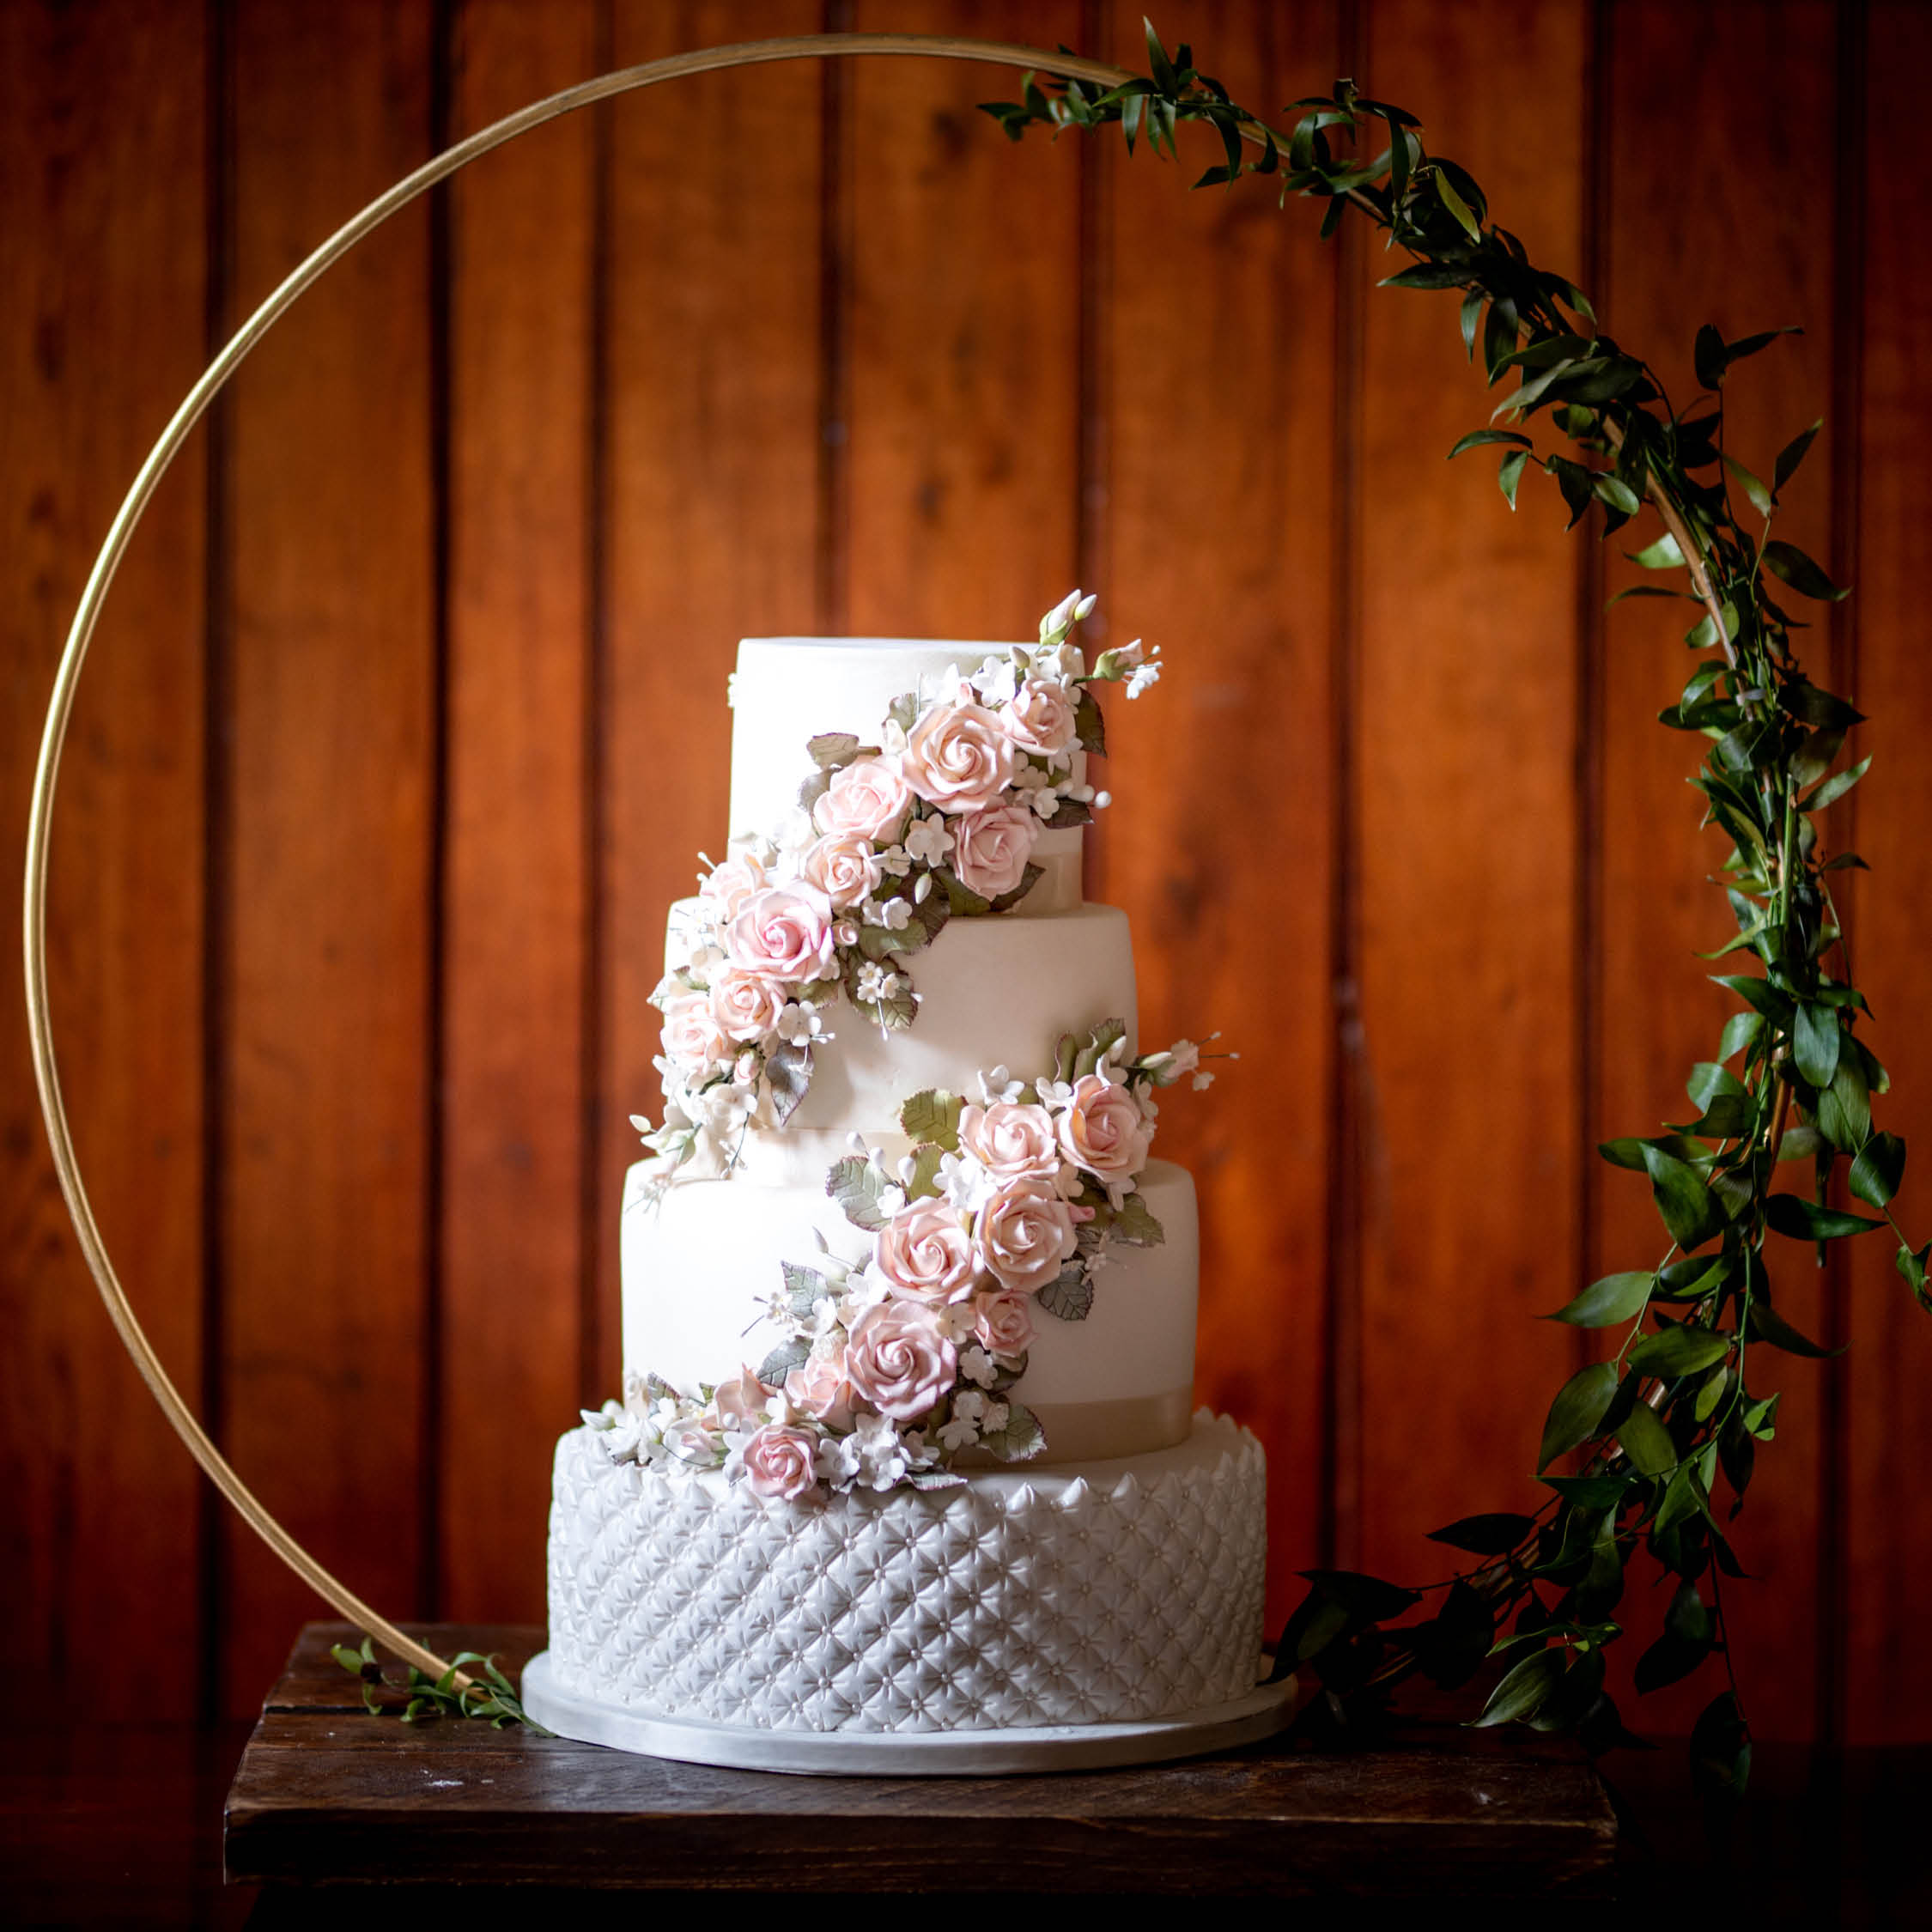 Ideas for an intimate wedding, intimate wedding cakes